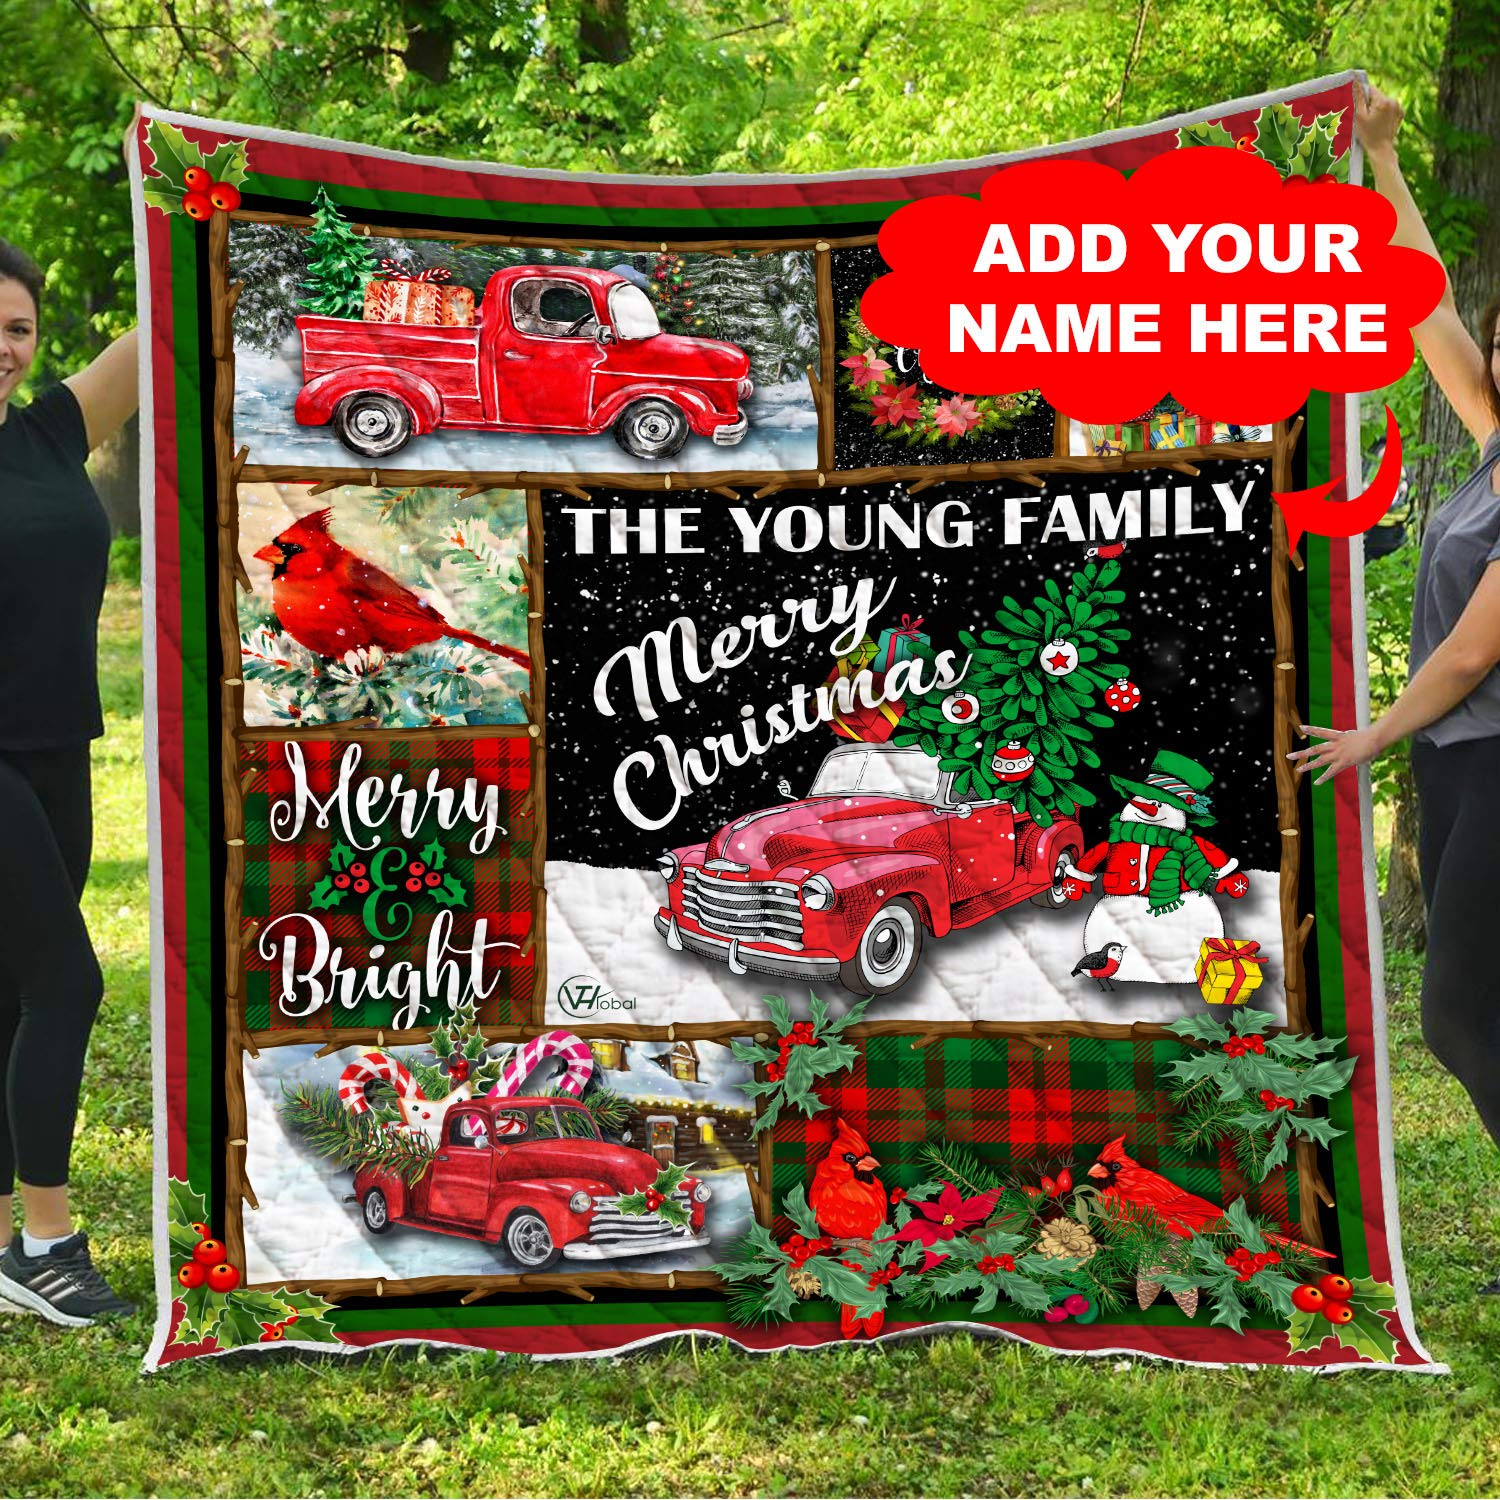 Personalized Family Name Red Pickup Truck Christmas Quilt Fleece Throw Blankets Comforter Tapestry Holiday Xmas Birthday Custom Gifts for Mom Dad Wife Husband Kids Son Daughter Grandma Grandpa